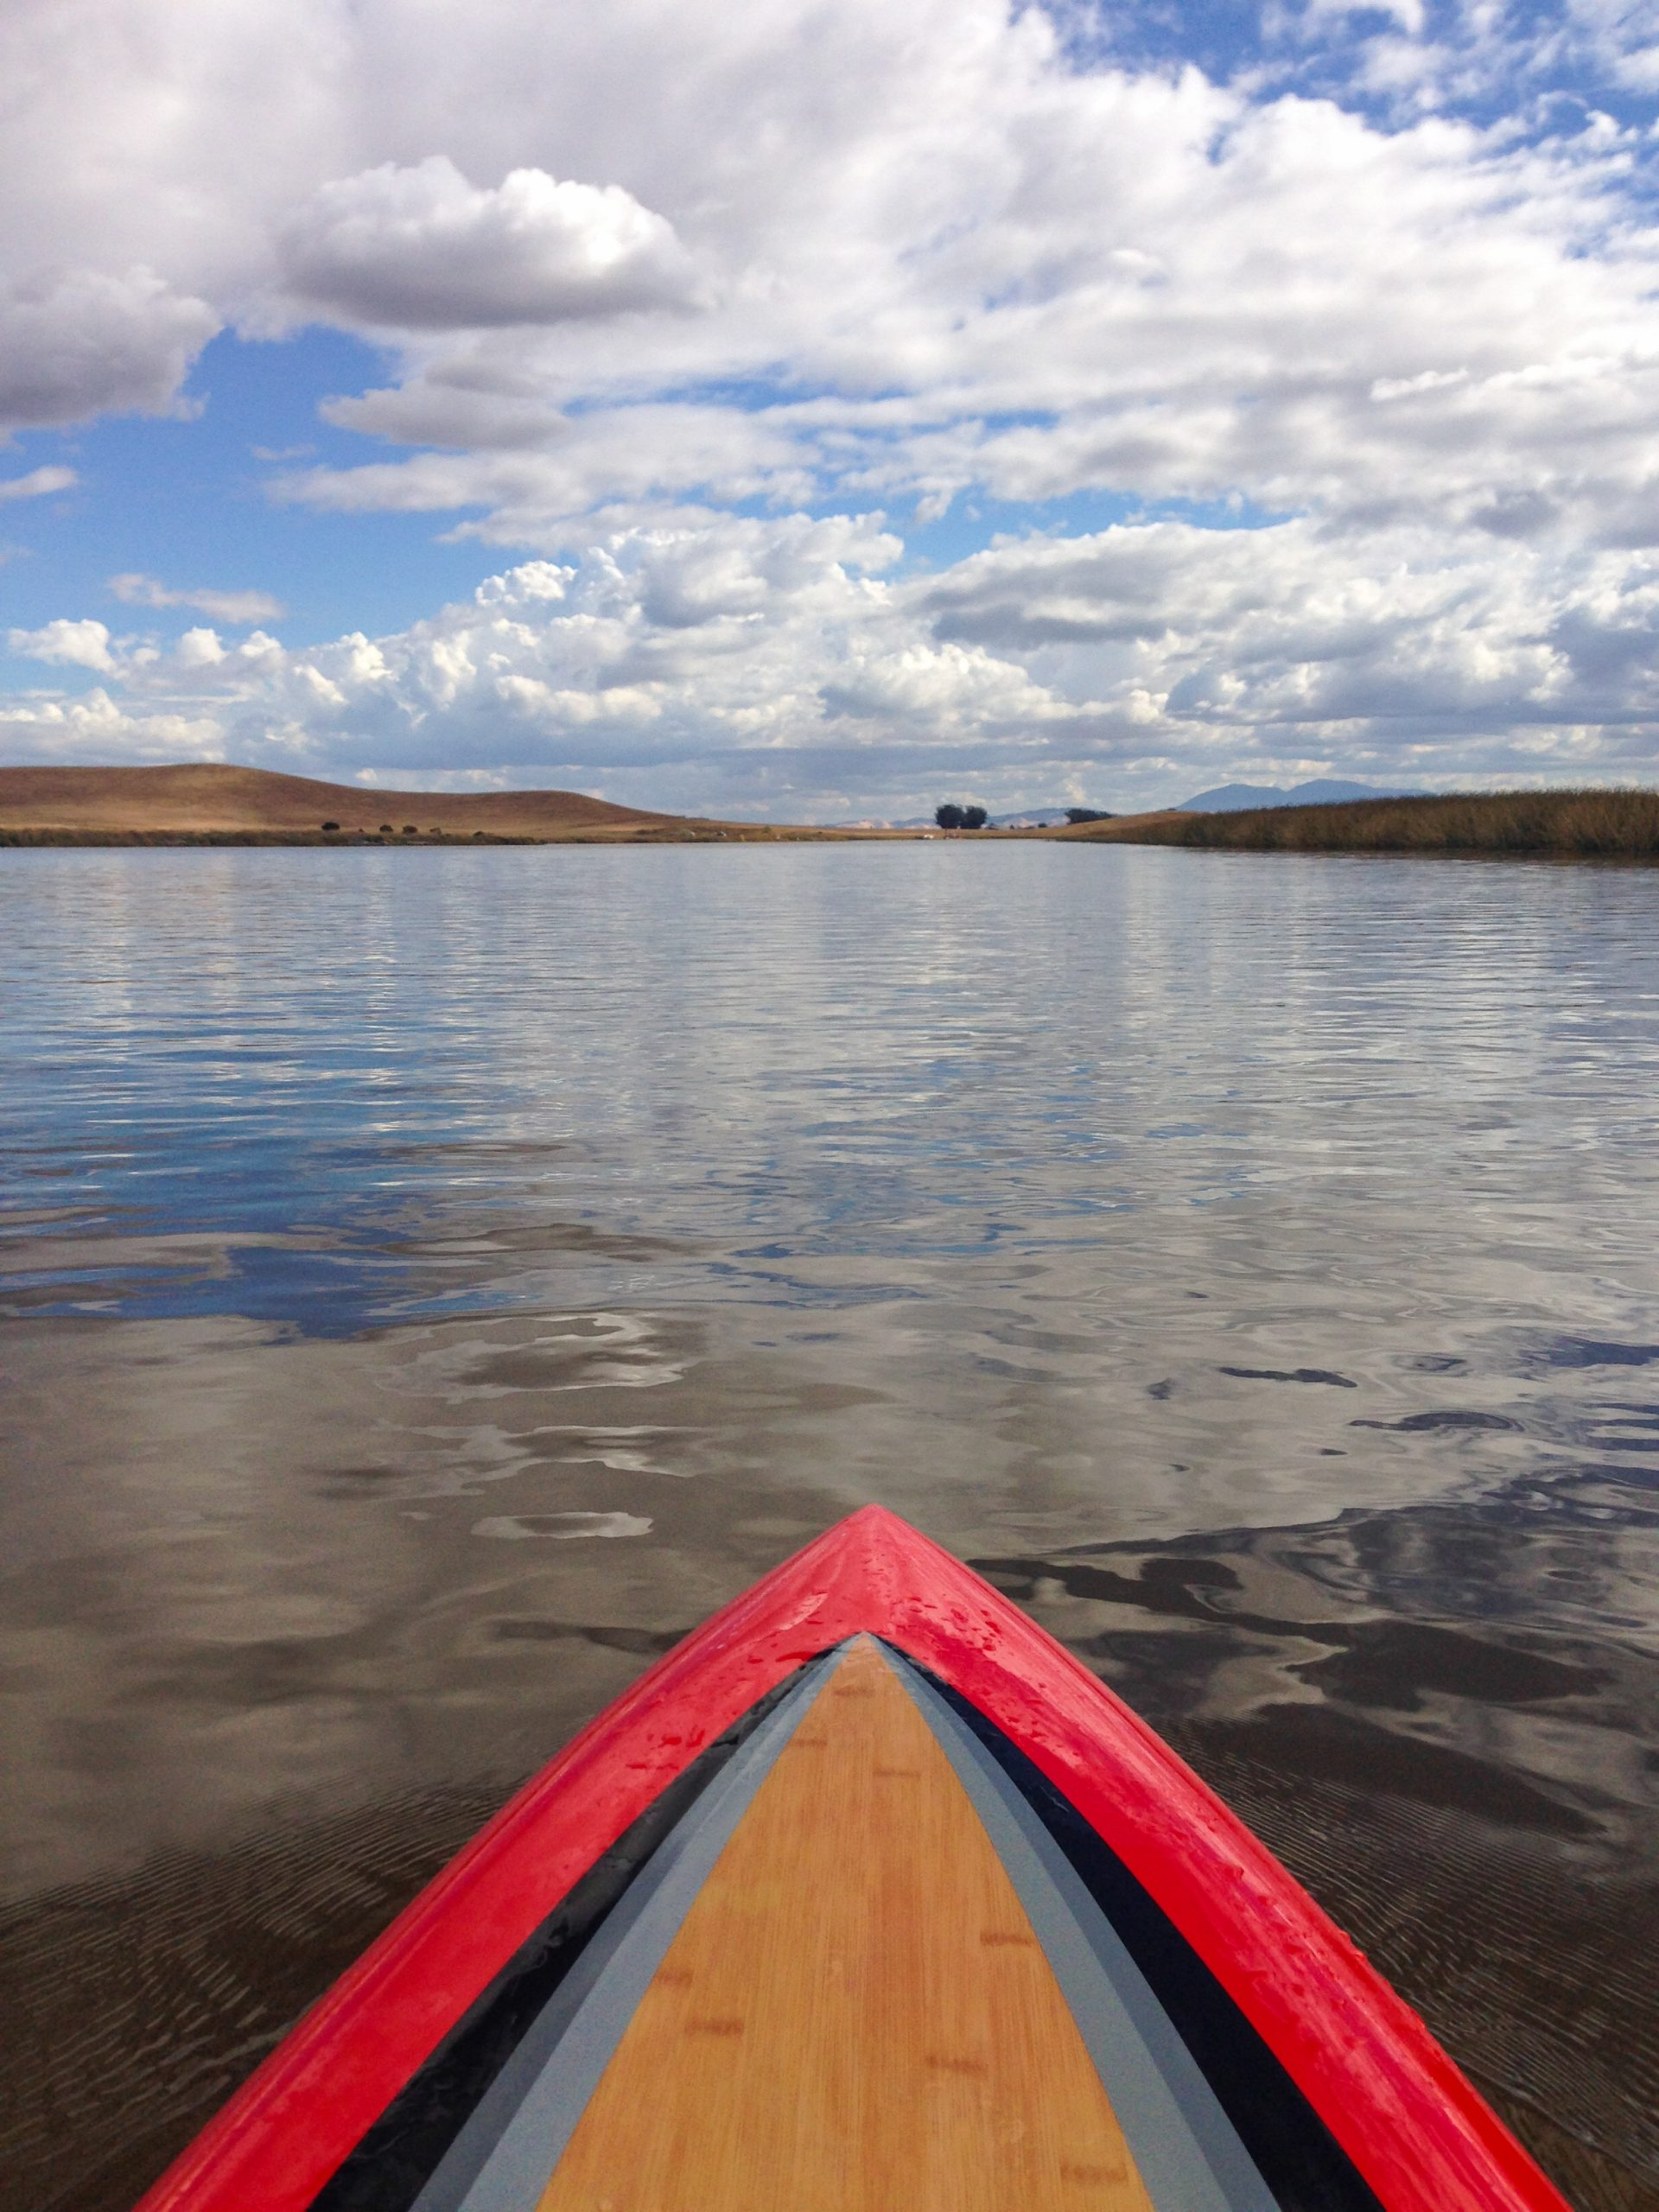 Looking from paddleboard across water